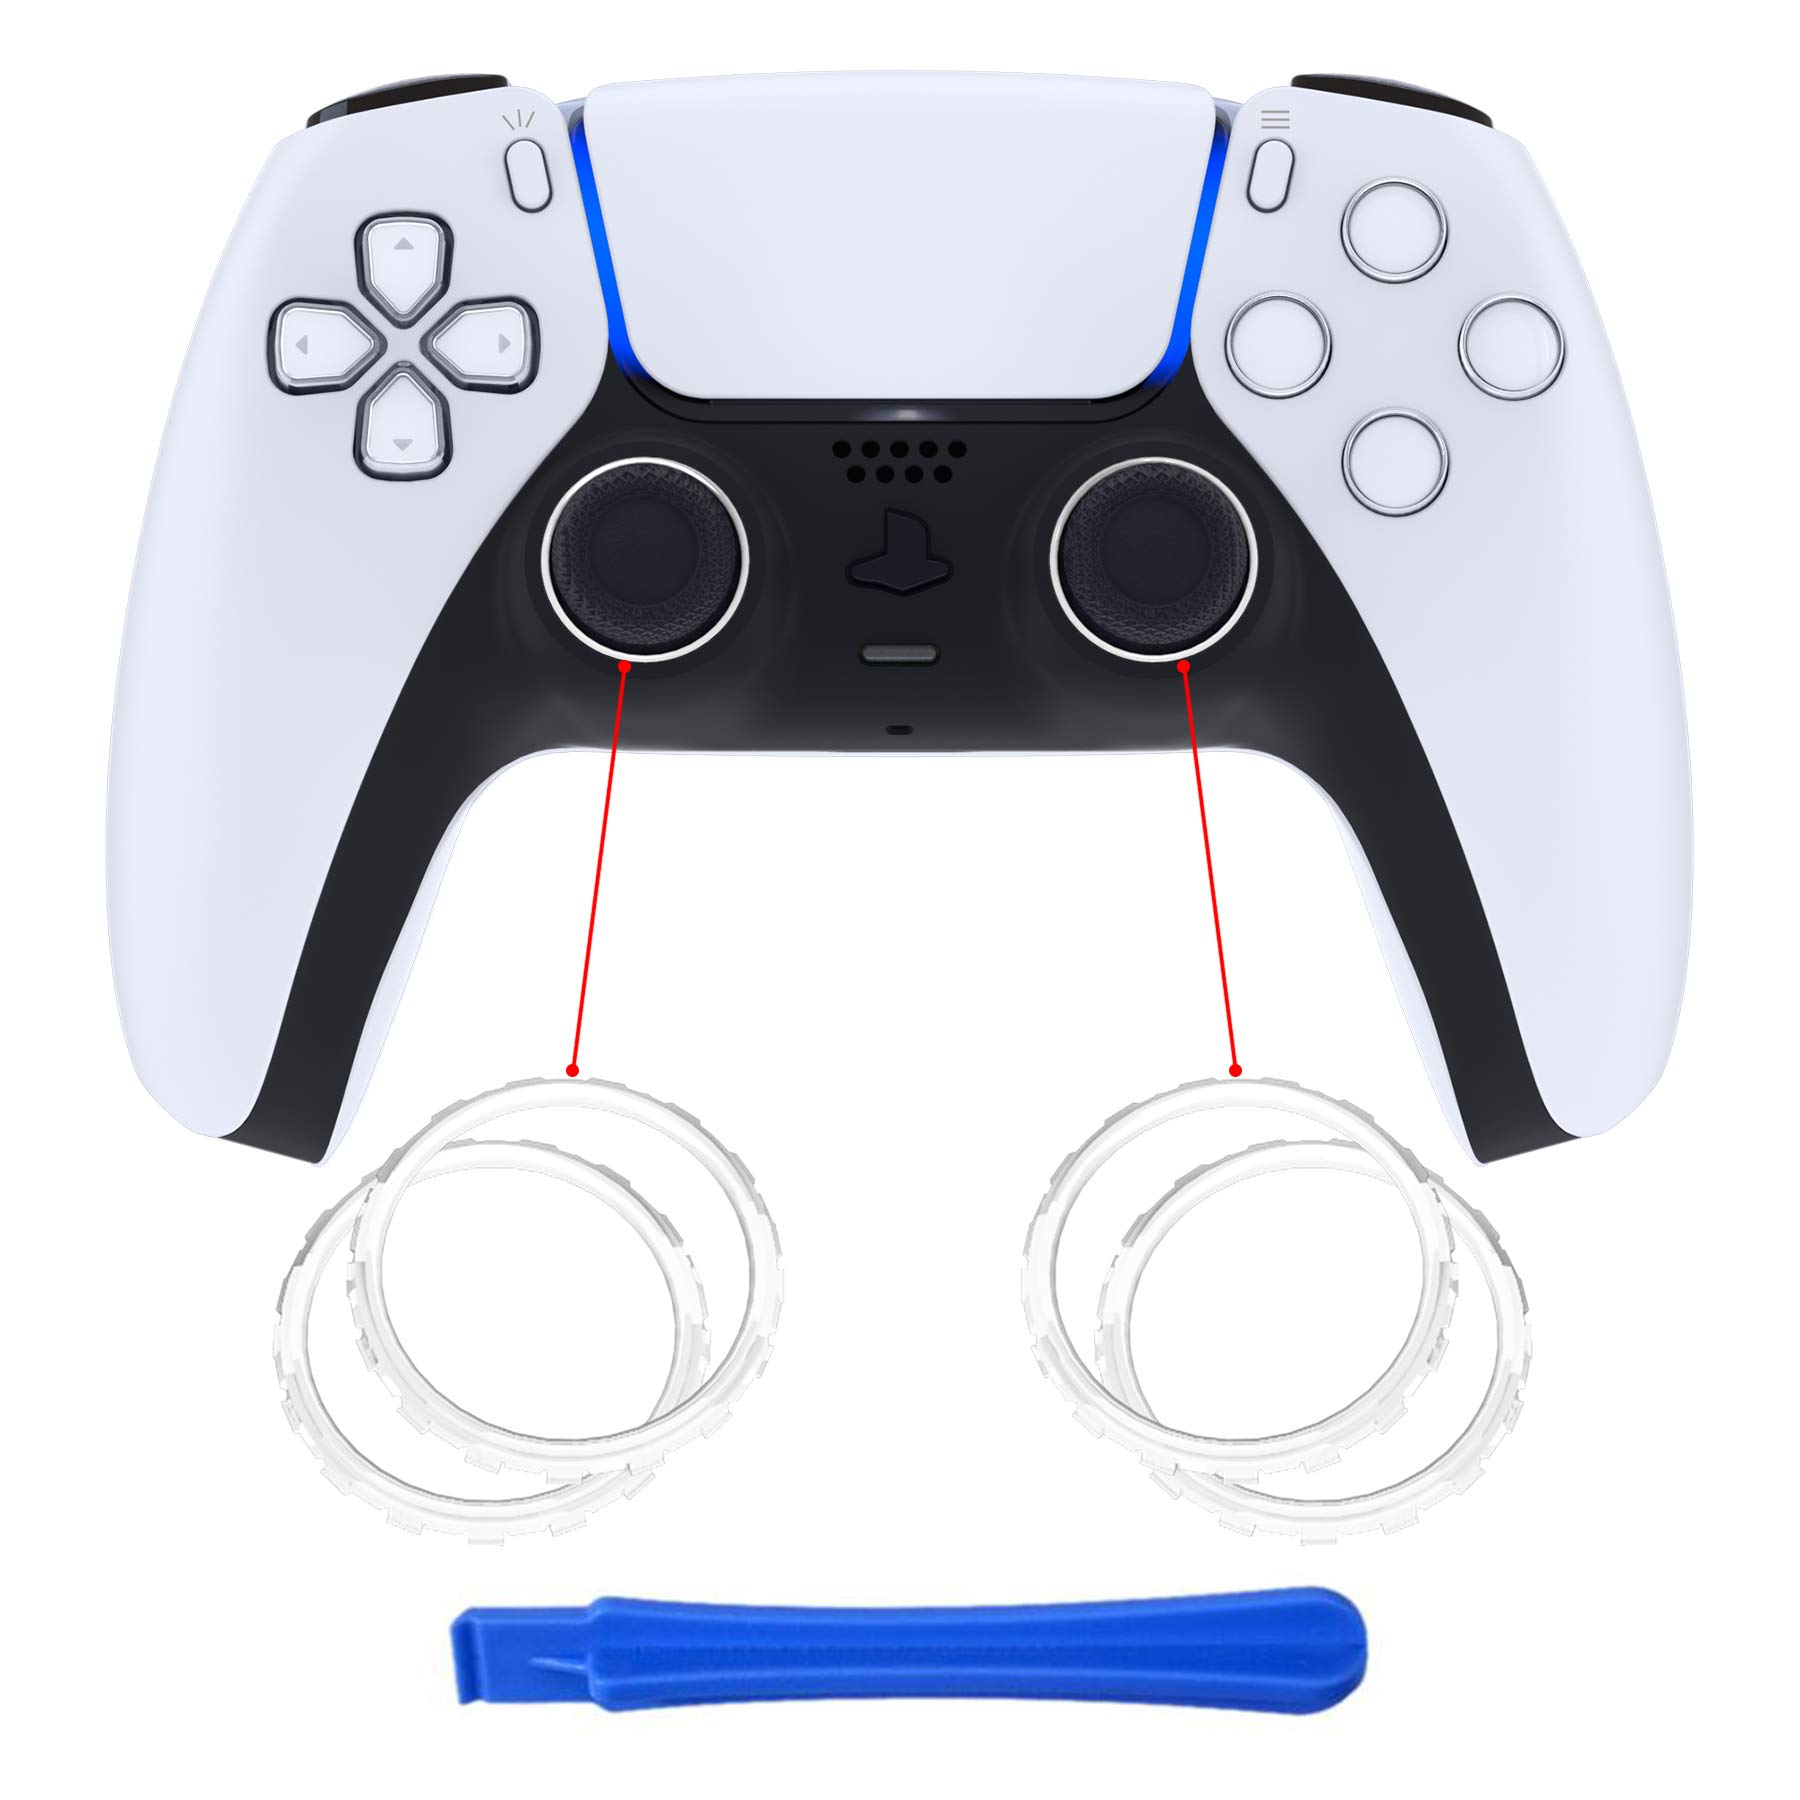 eXtremeRate White Replacement Accessories Accent Rings for DualSense 5 PS5 Controller - Controller NOT Included